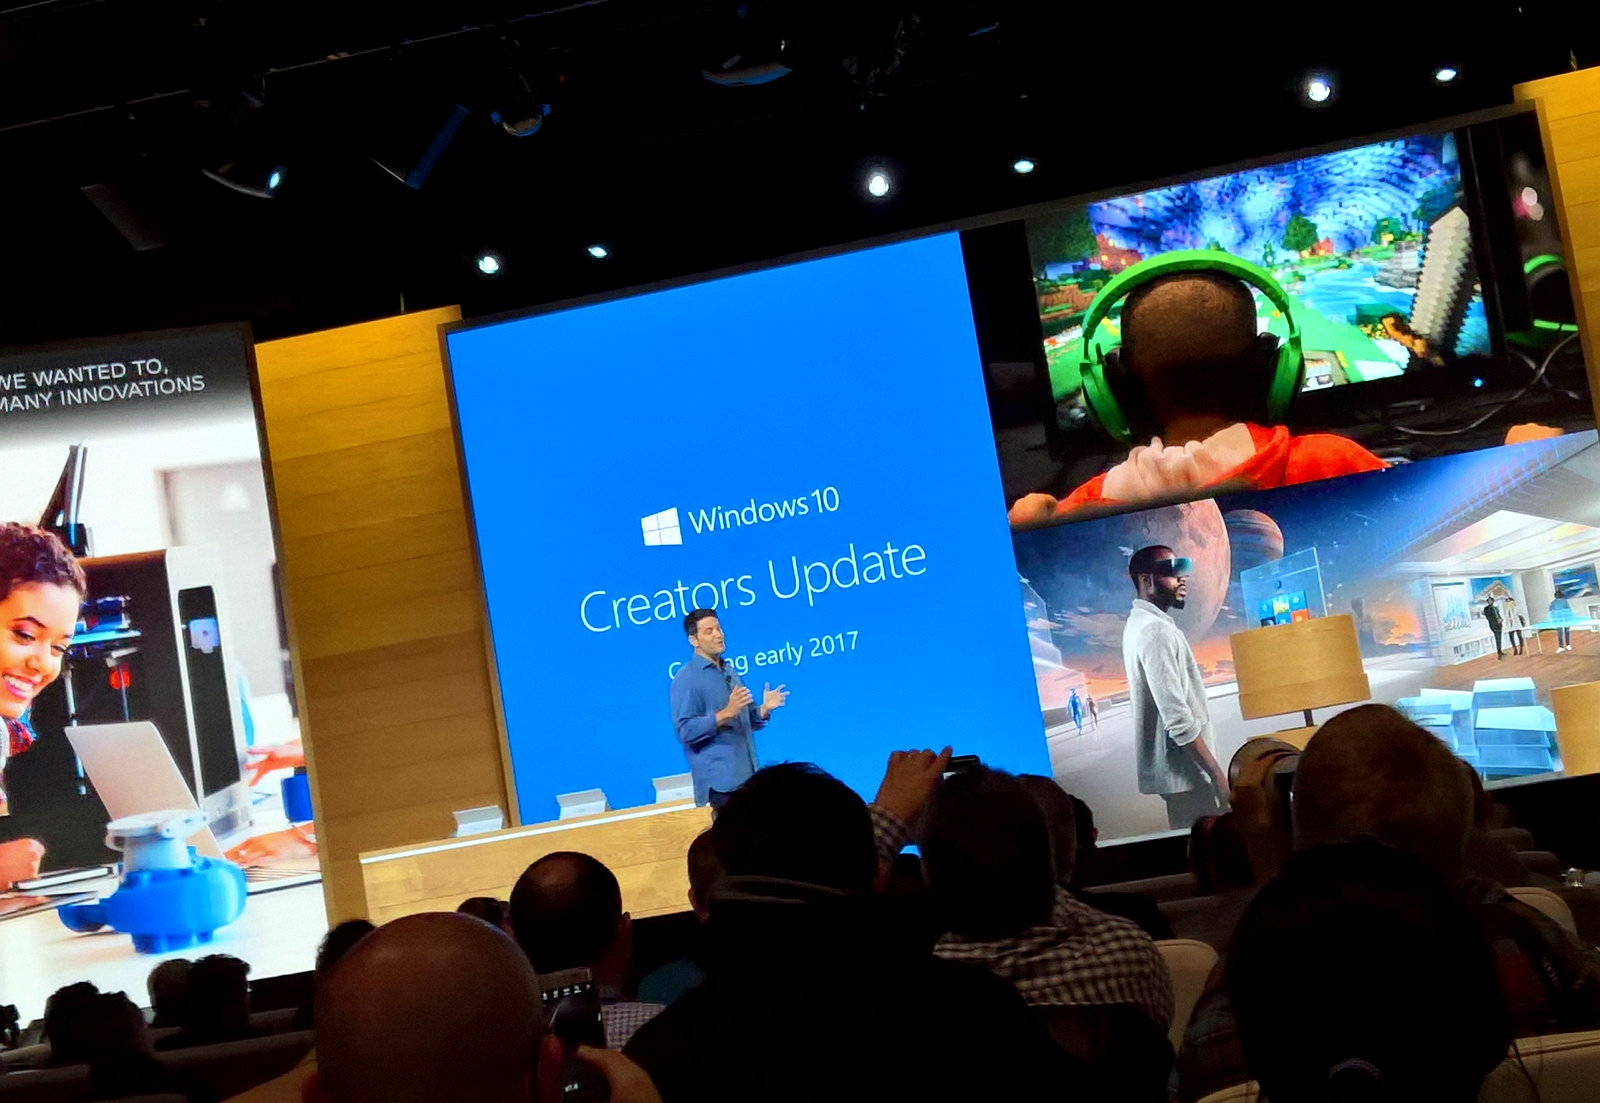 Windows 10 Creators Update coming in early 2017